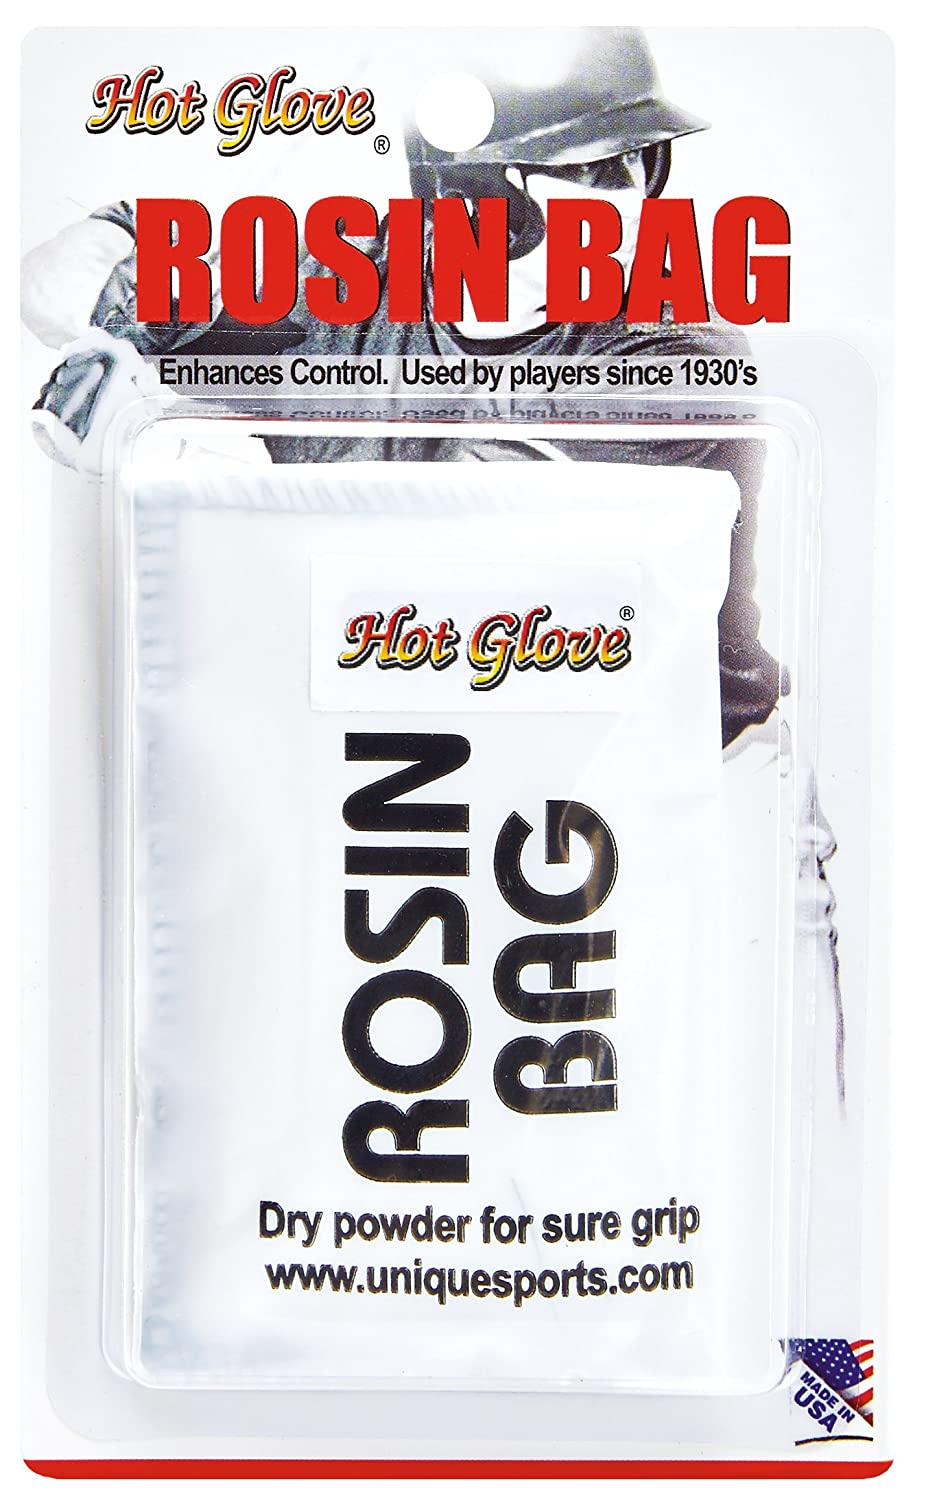 Hot Glove Rosin Bag ROZ-B